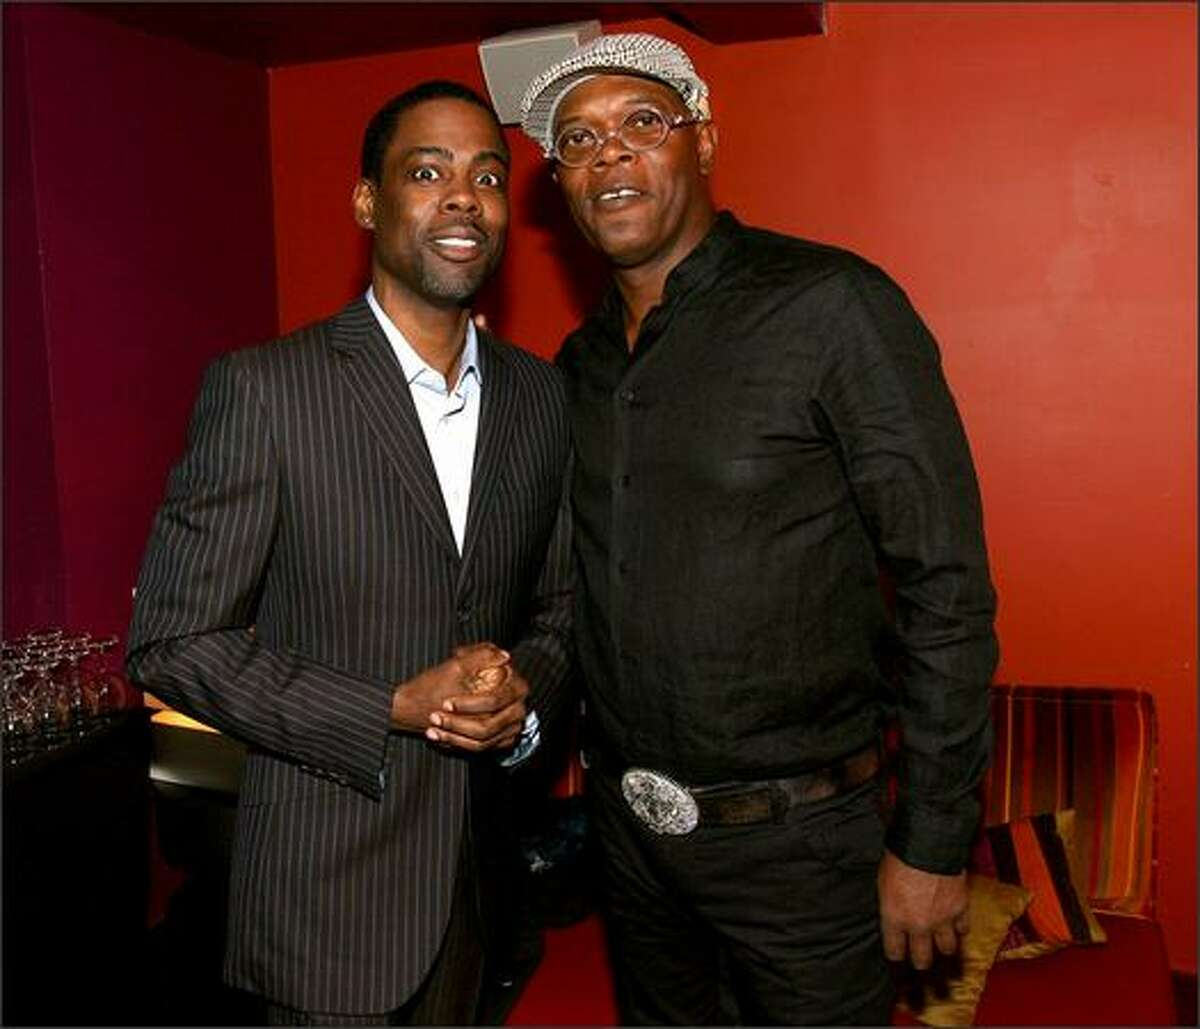 Actor/comedian Chris Rock and actor Samuel L. Jackson arrive.